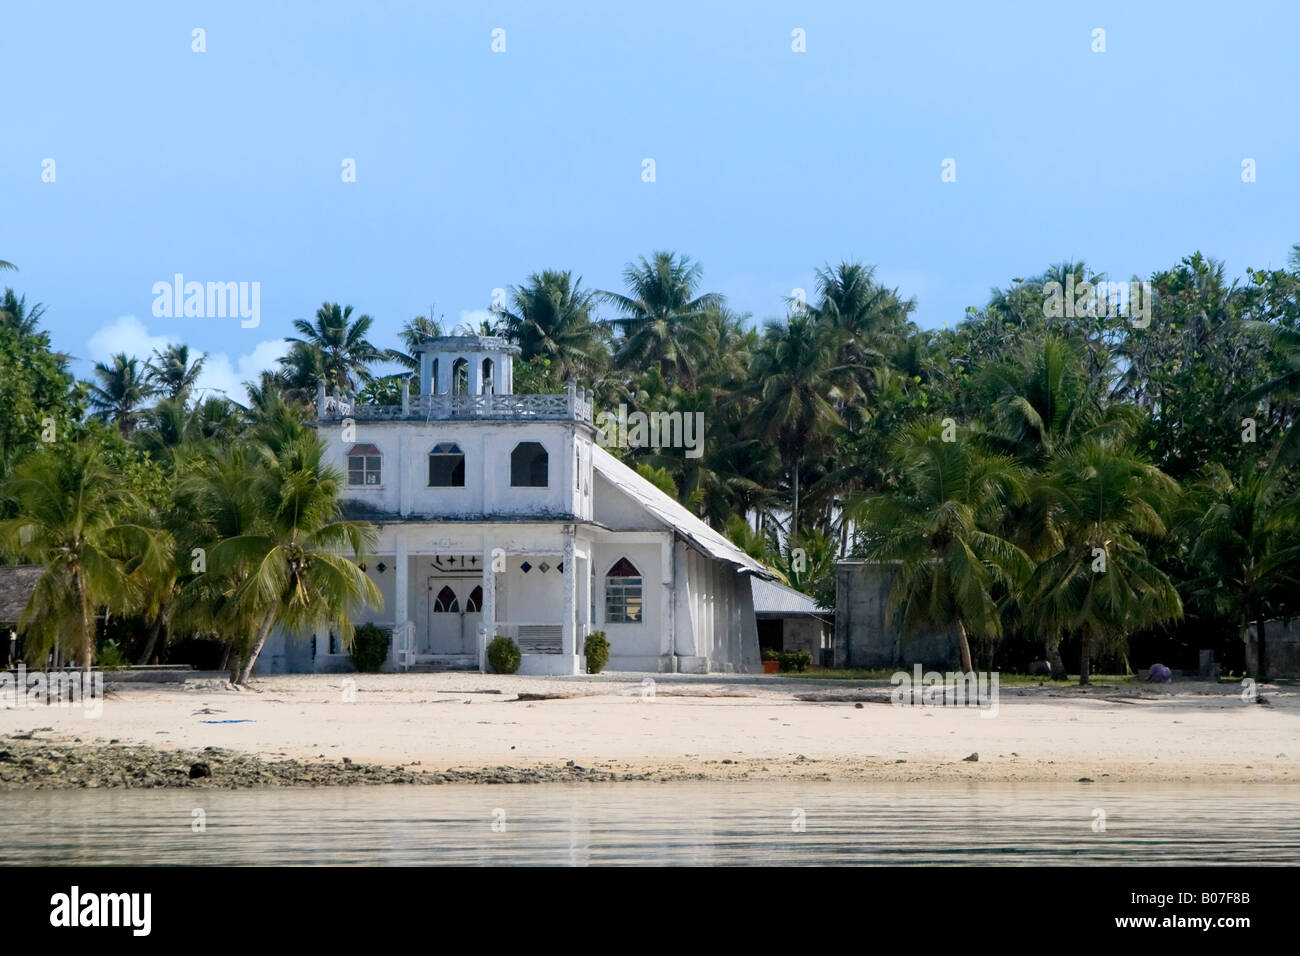 Protestant Church, Jaluit Atoll, Marshall Islands - Stock Image